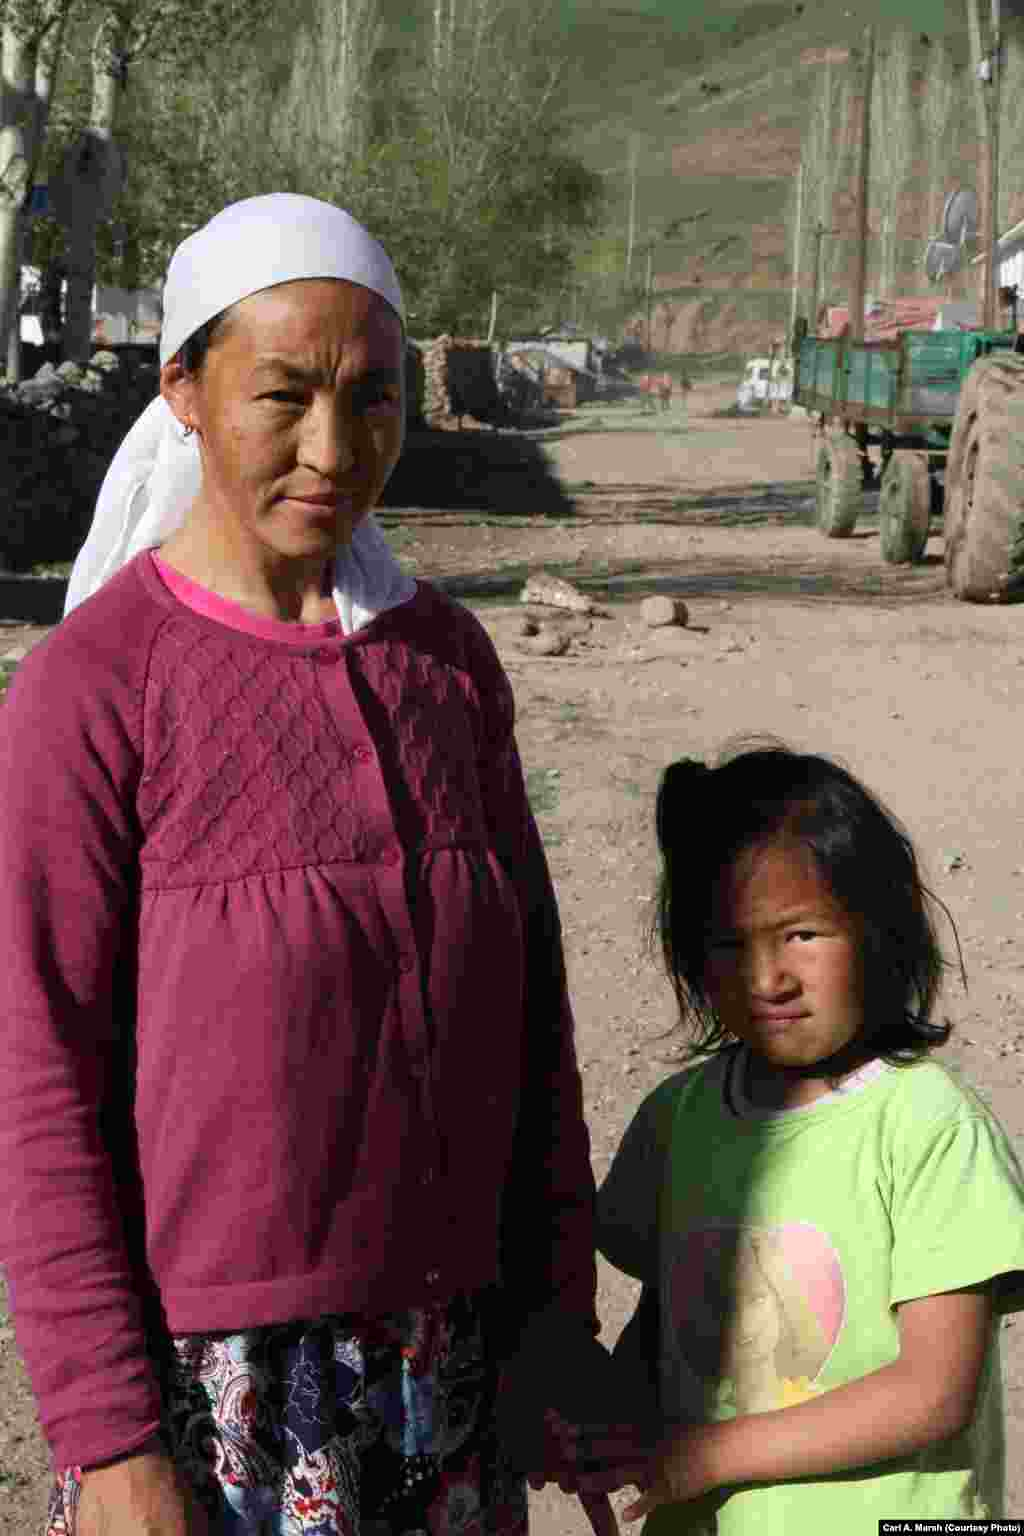 Asil and her daughter, Semanur, one of four siblings. The children have learned the Kyrgyz language as well as Turkish. The family plans to move to Istanbul to seek better educational opportunities for the children.